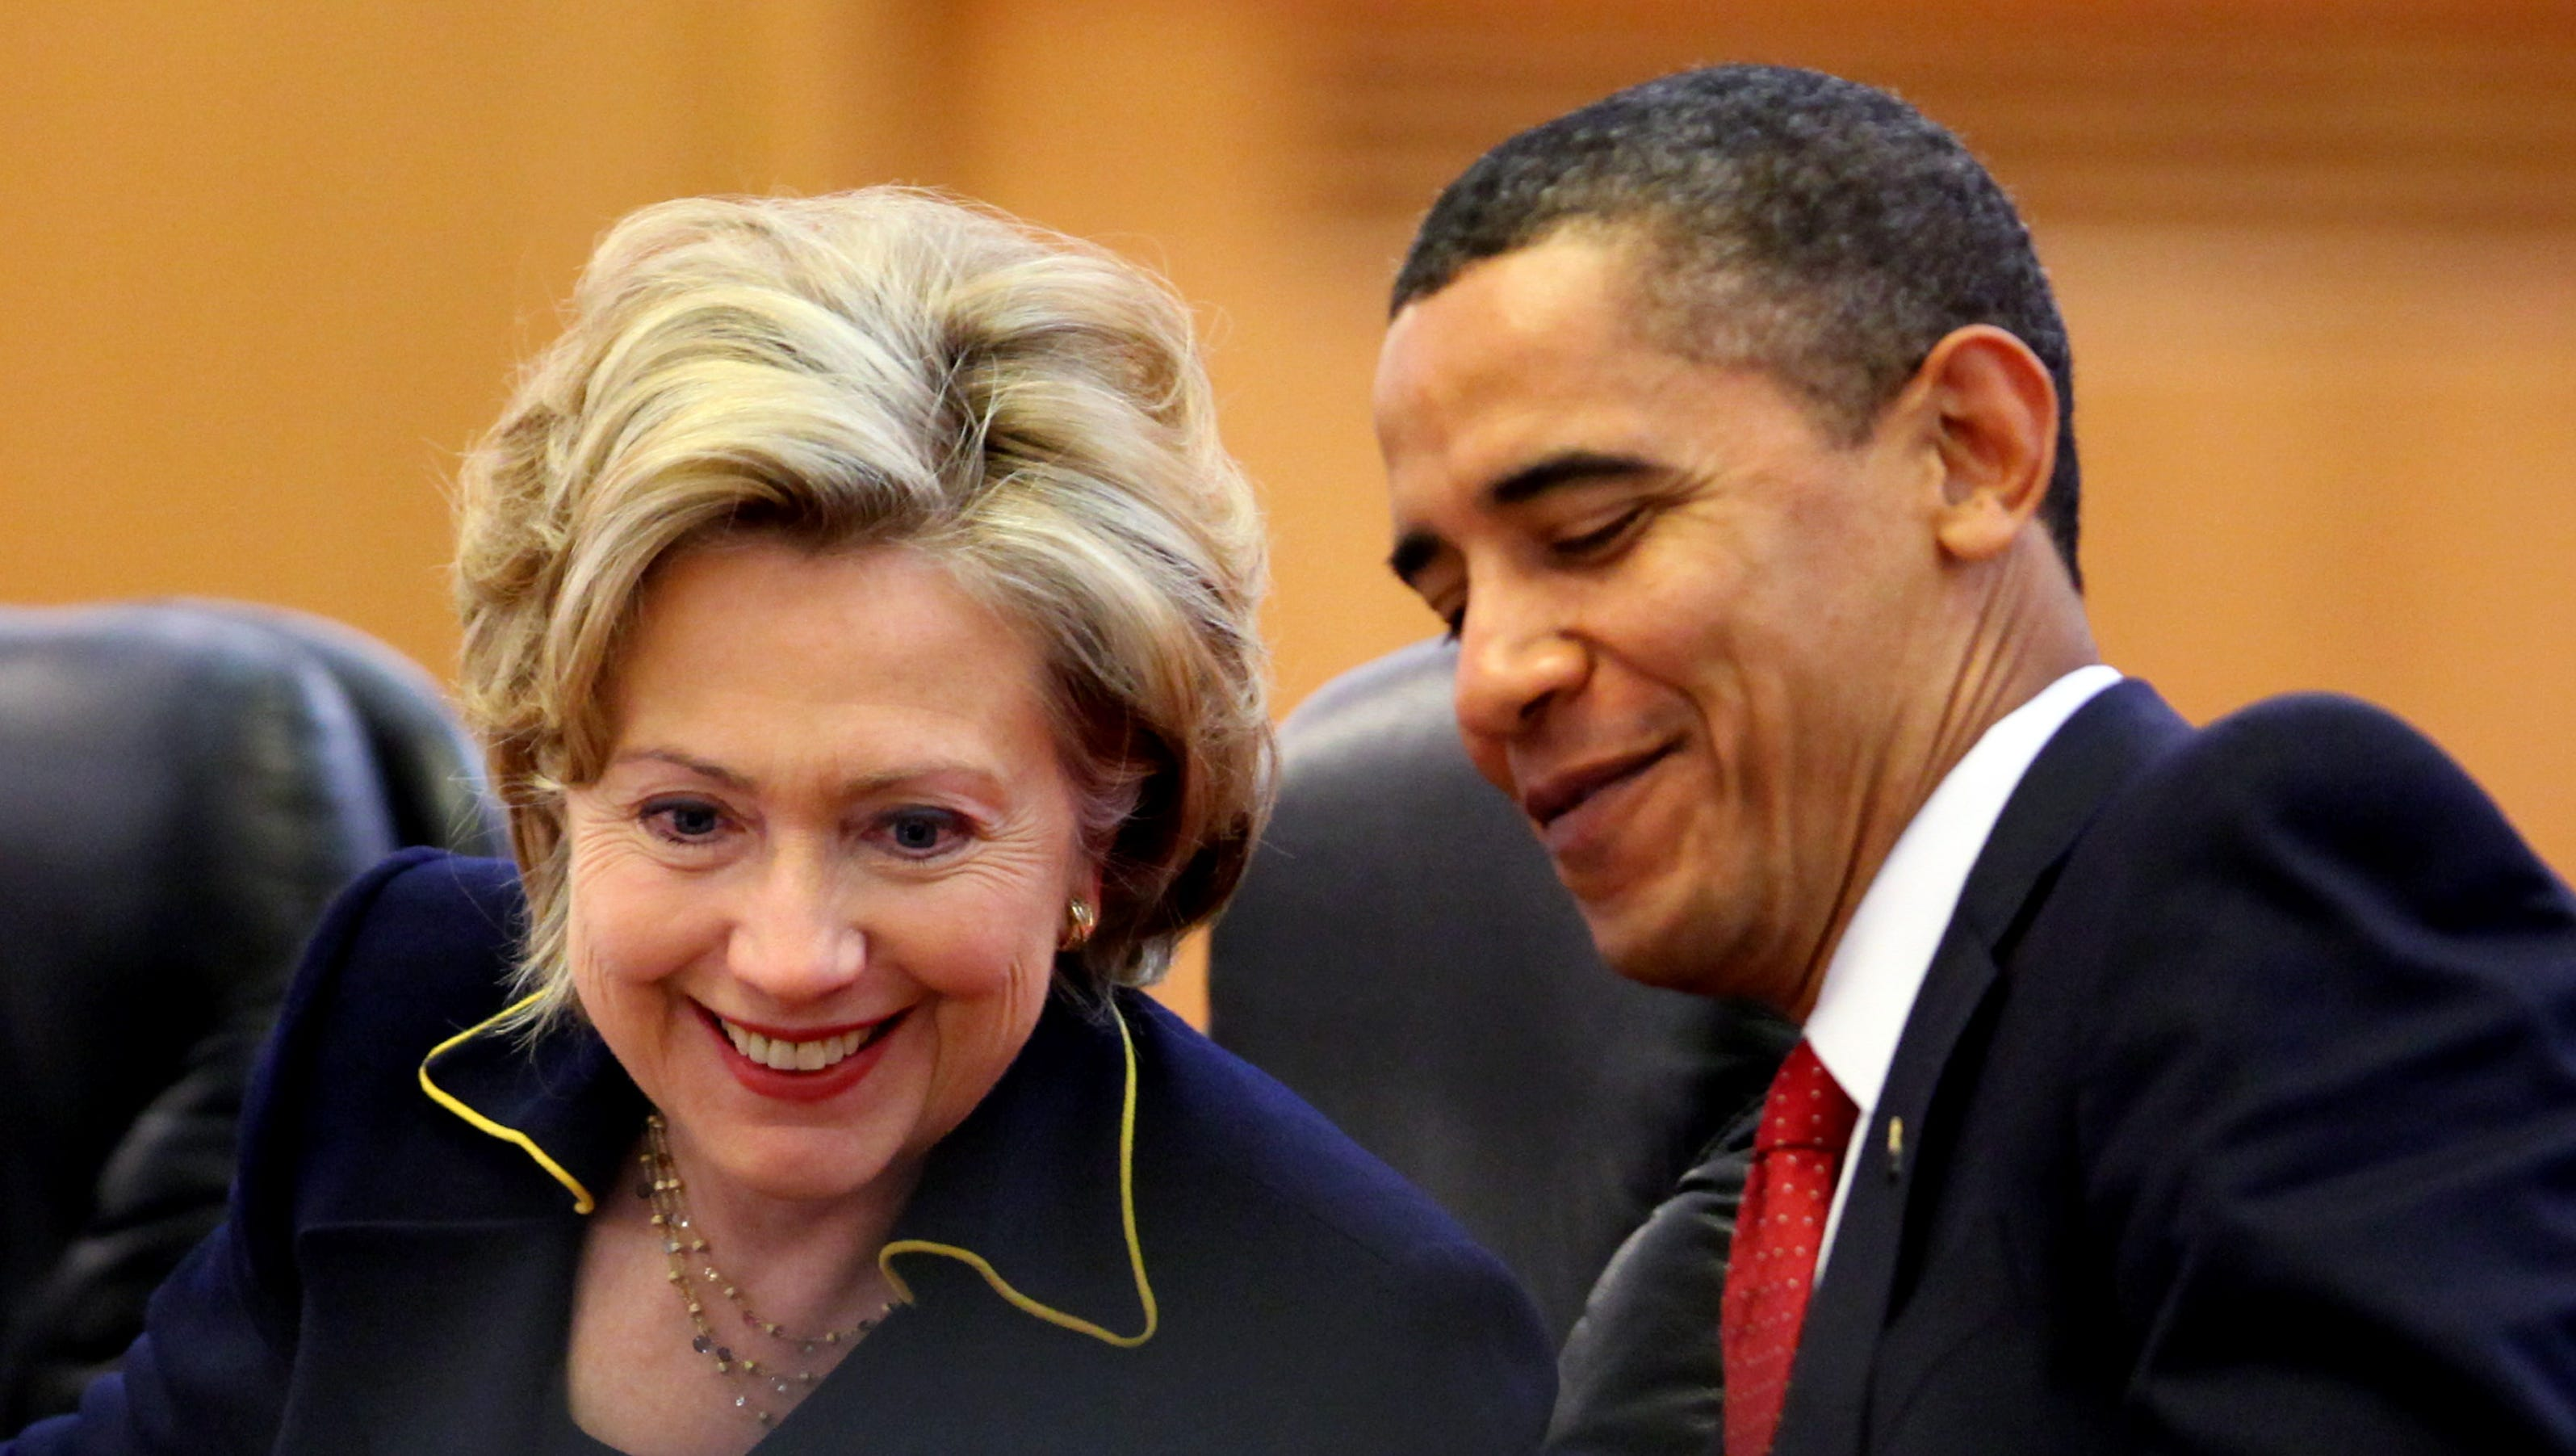 Obama, Hillary Clinton catch up in Oval Office chat